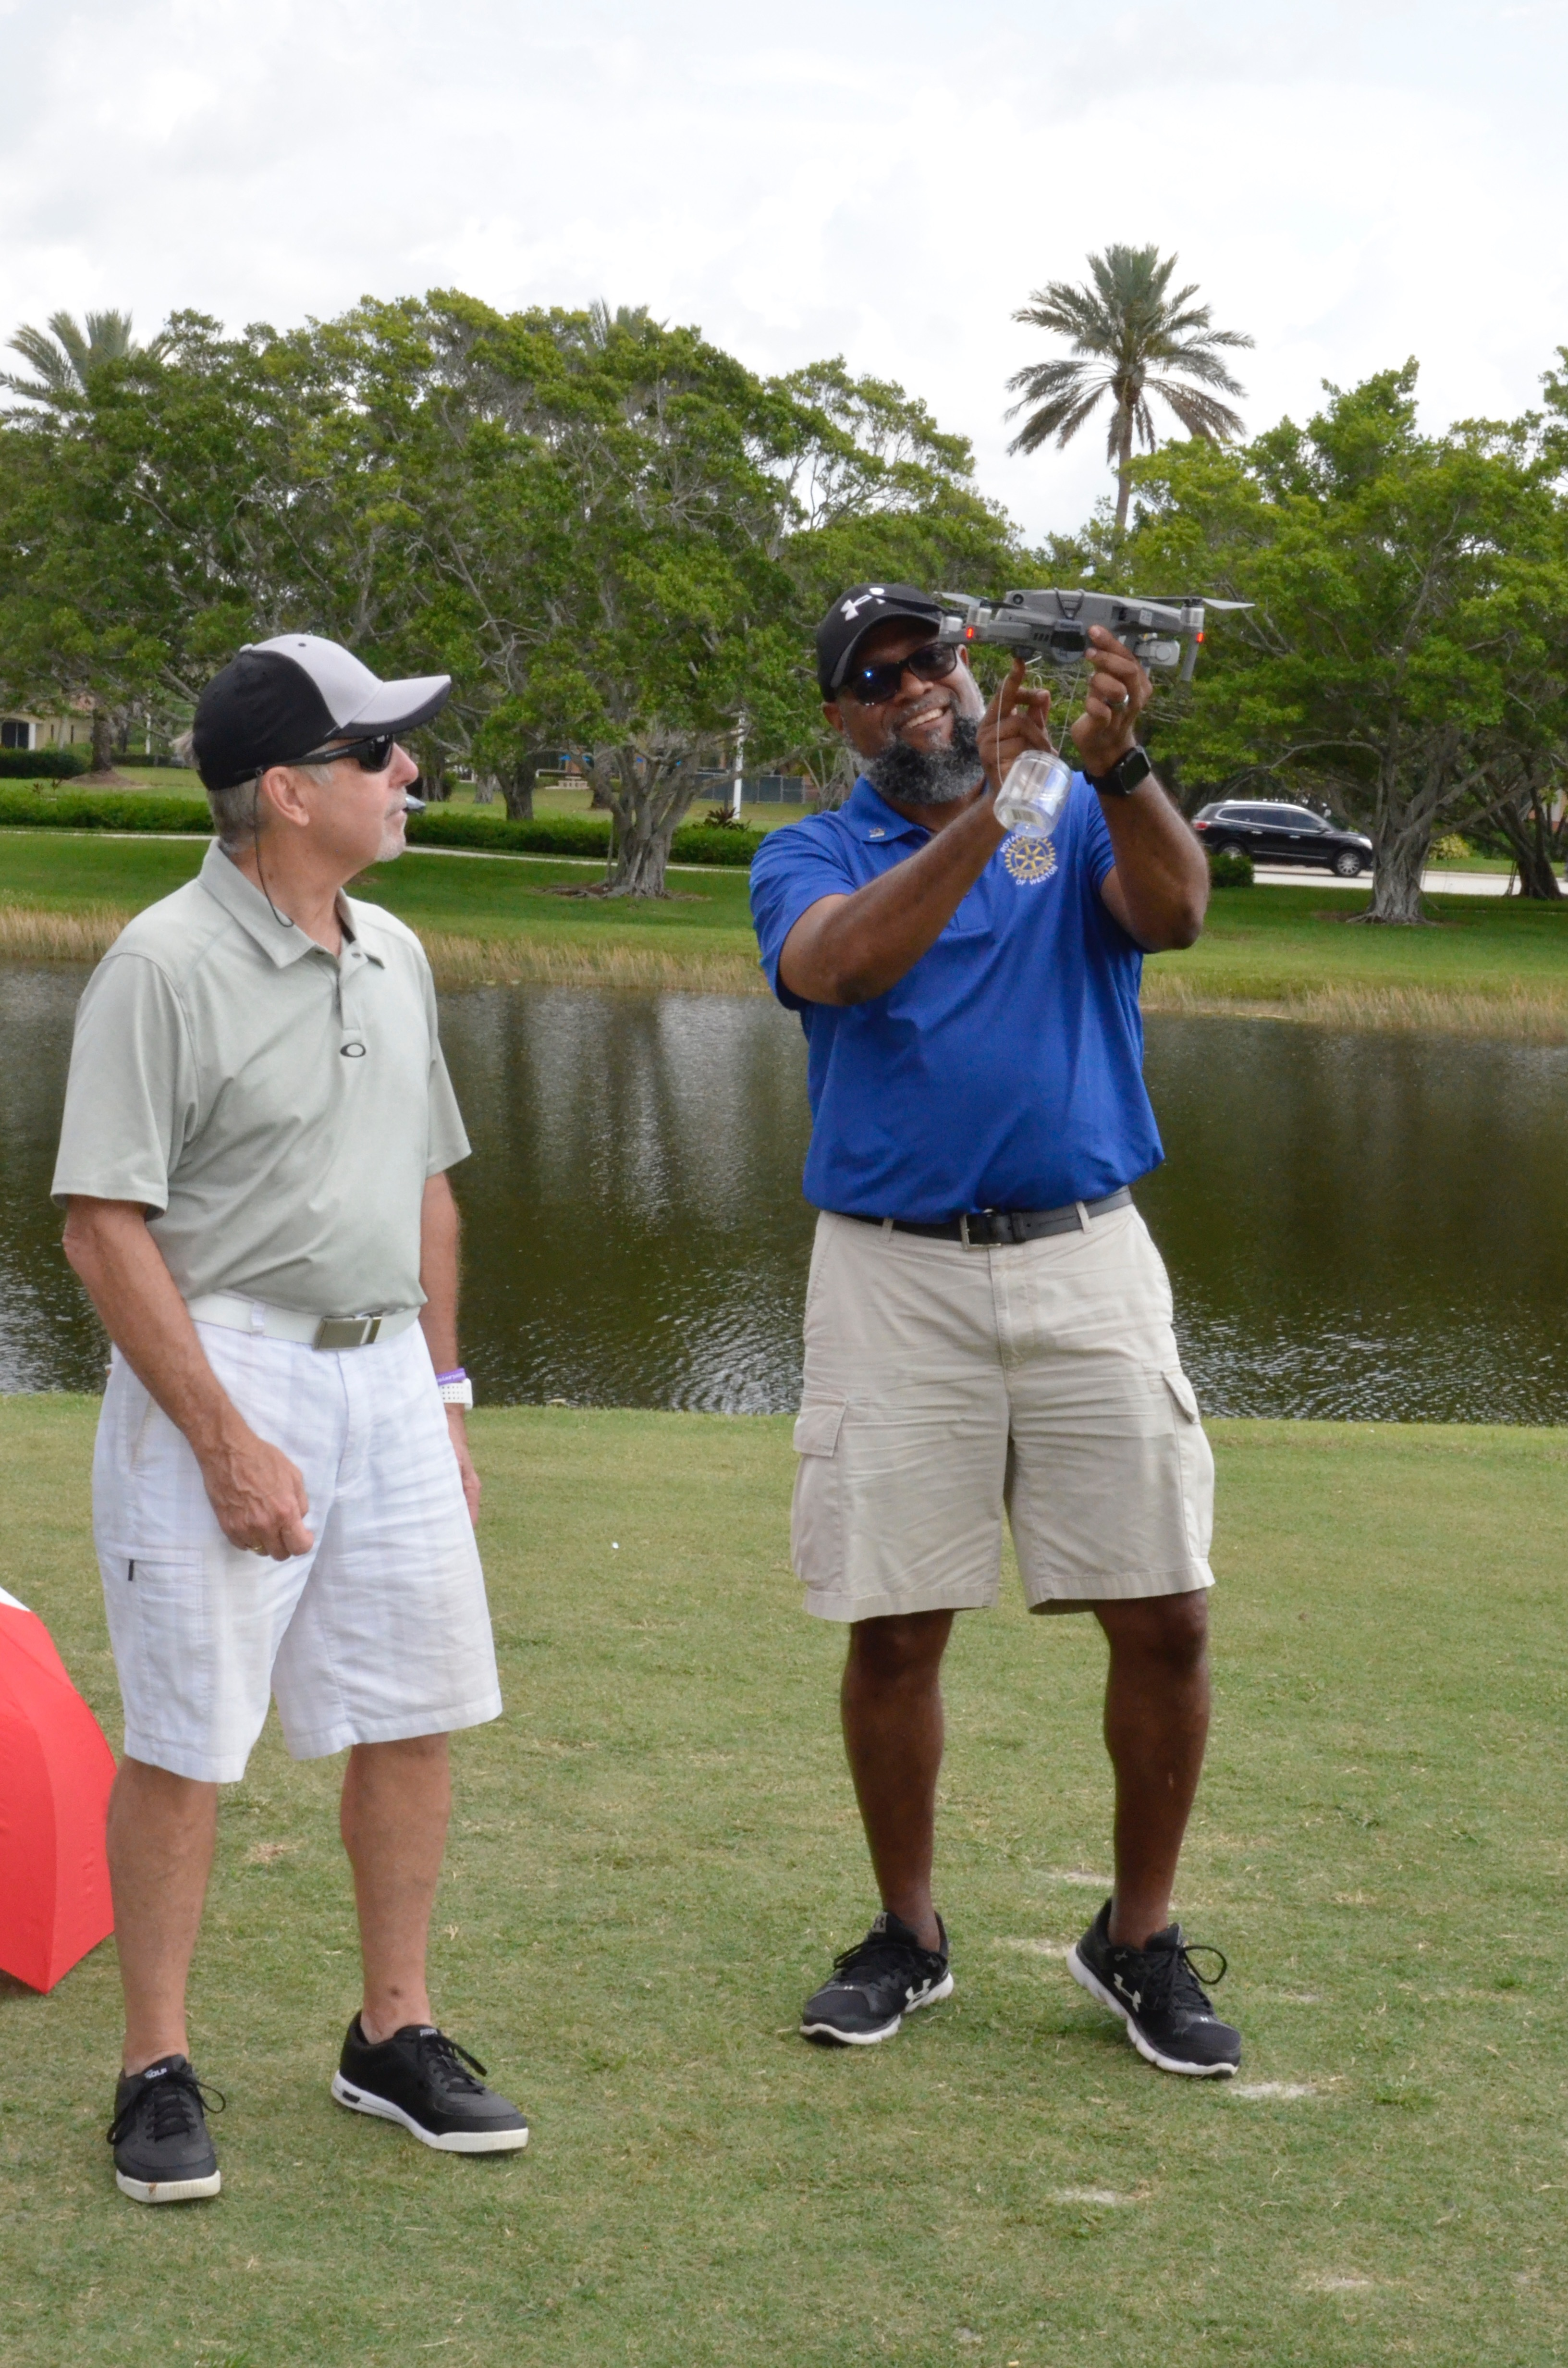 33rd Annual Rotary Golf Classic Sponsored by FHVLEGAL.COM gallery image #78